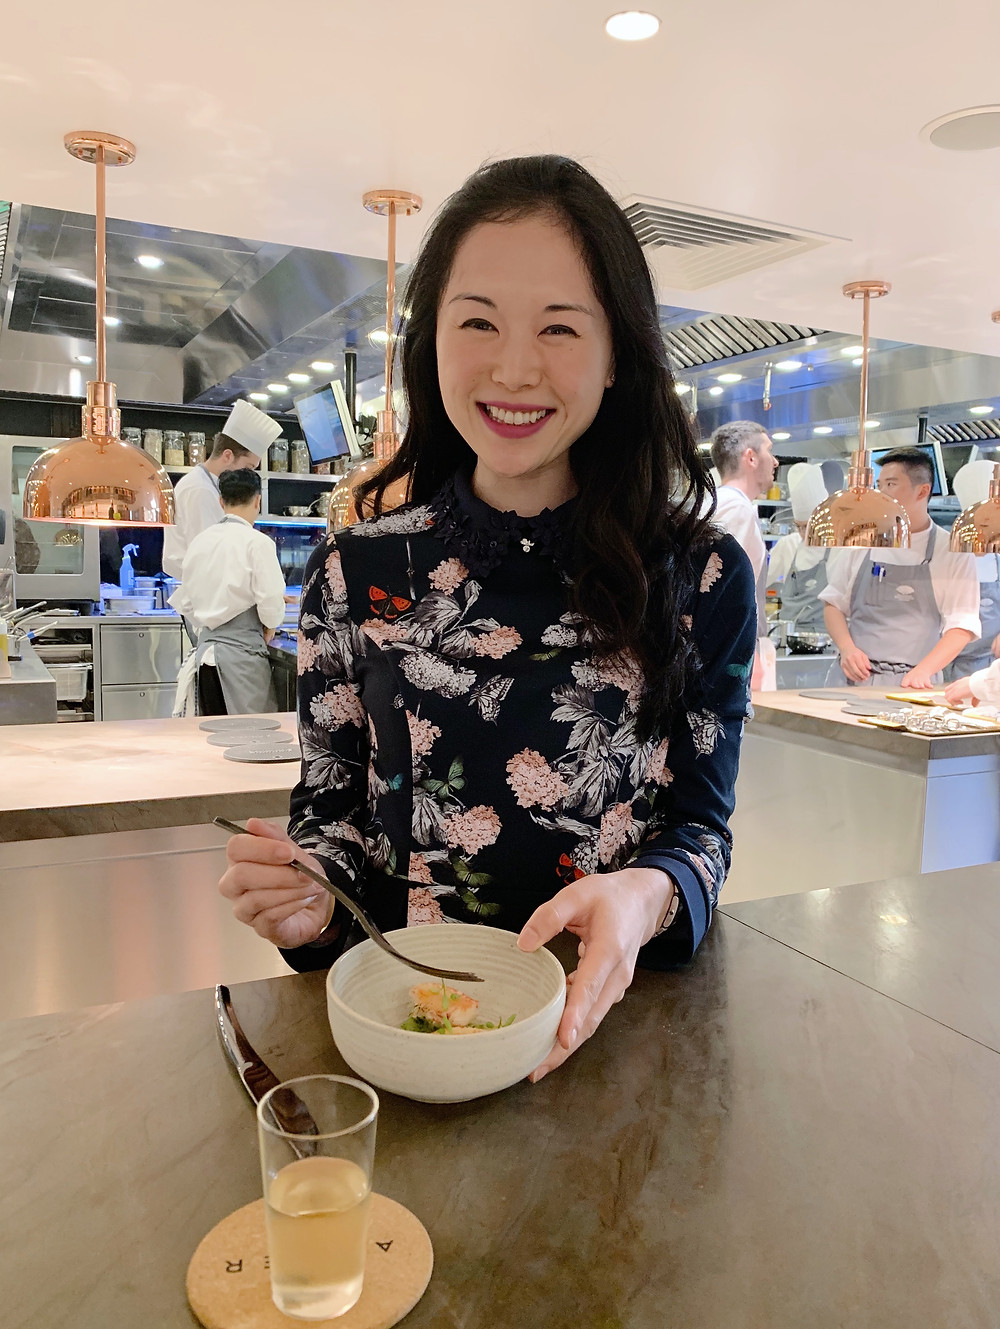 Jenni Lien food blogger at Amber restaurant in Hong Kong